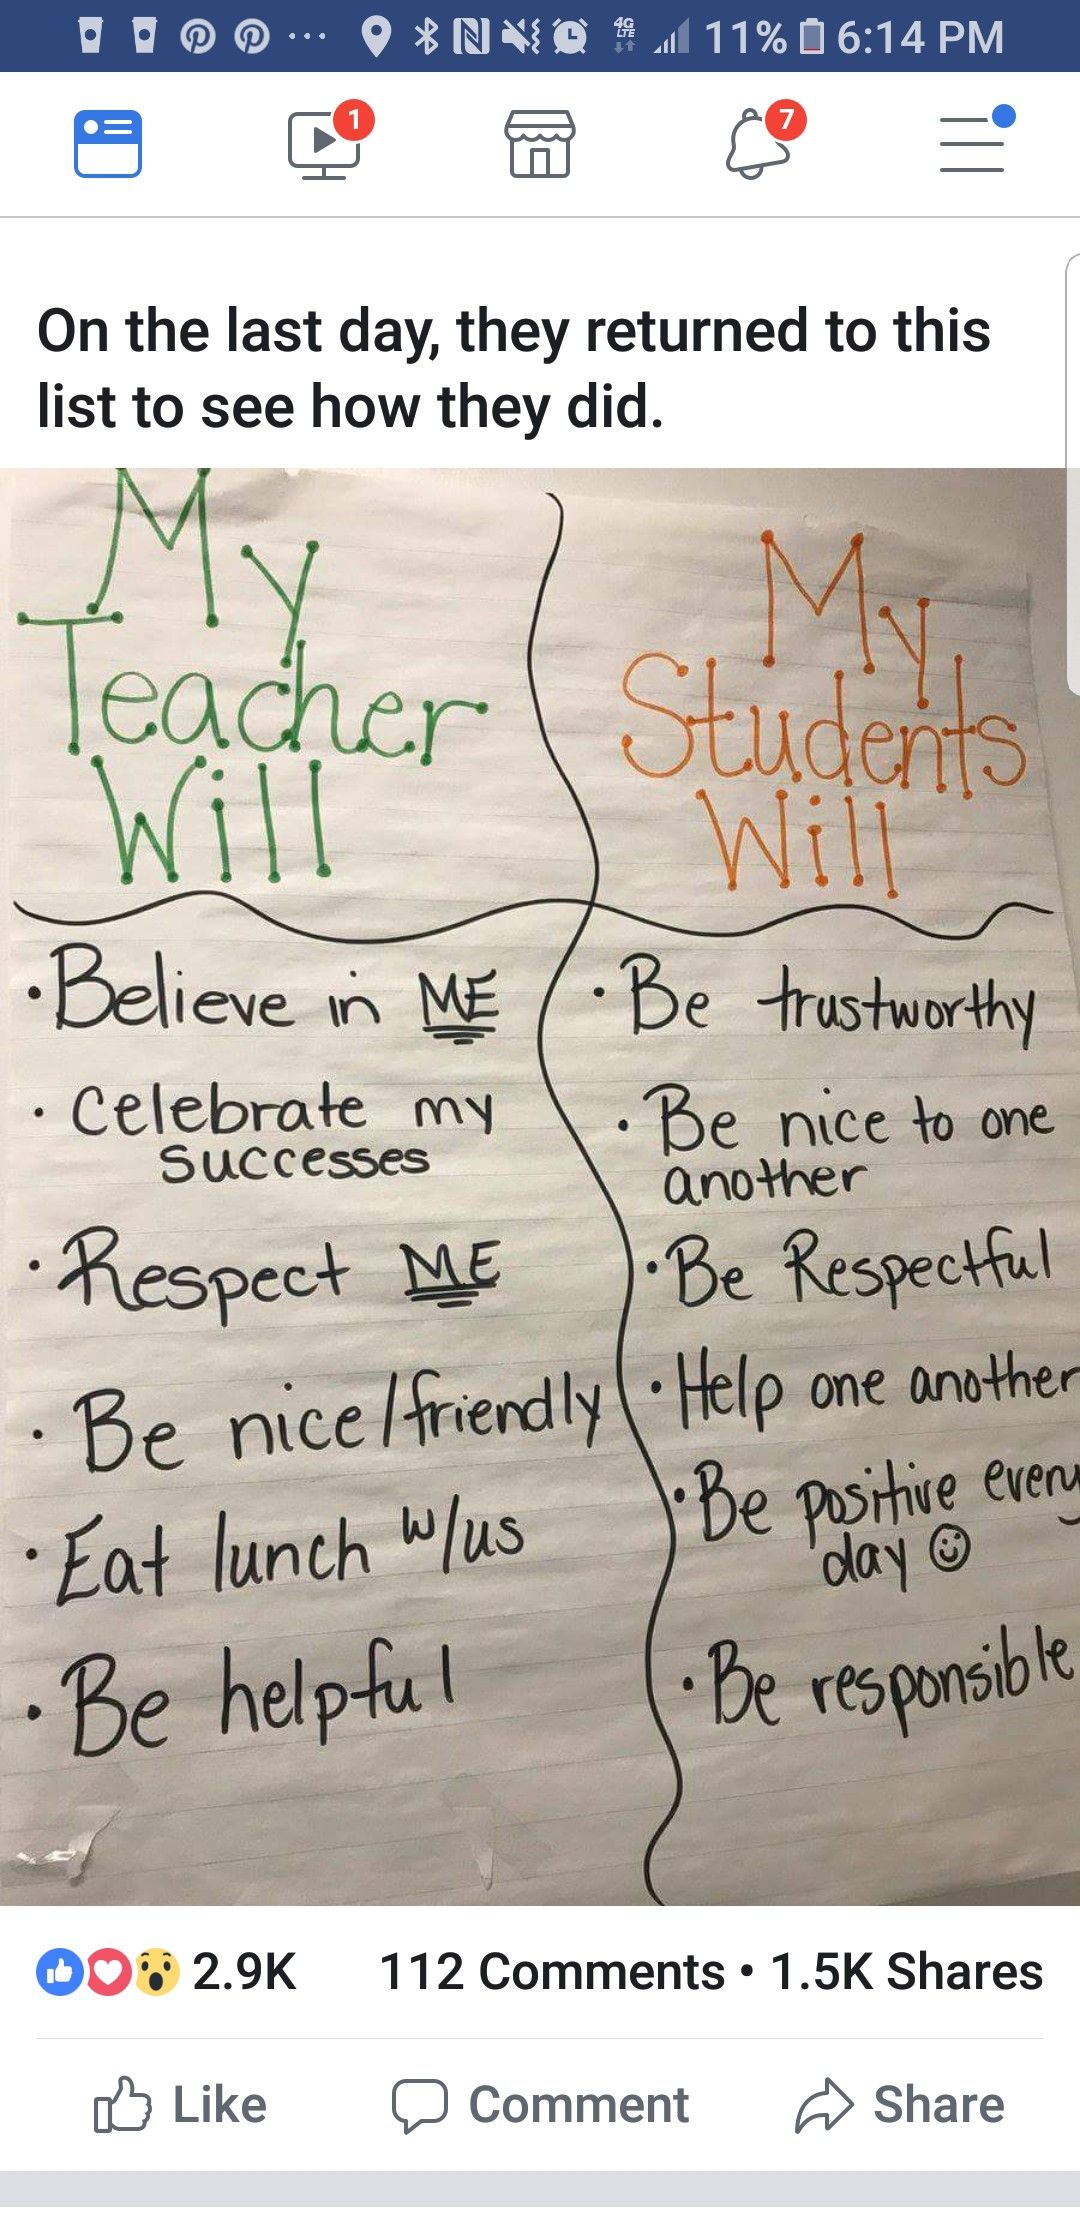 Teachers Will